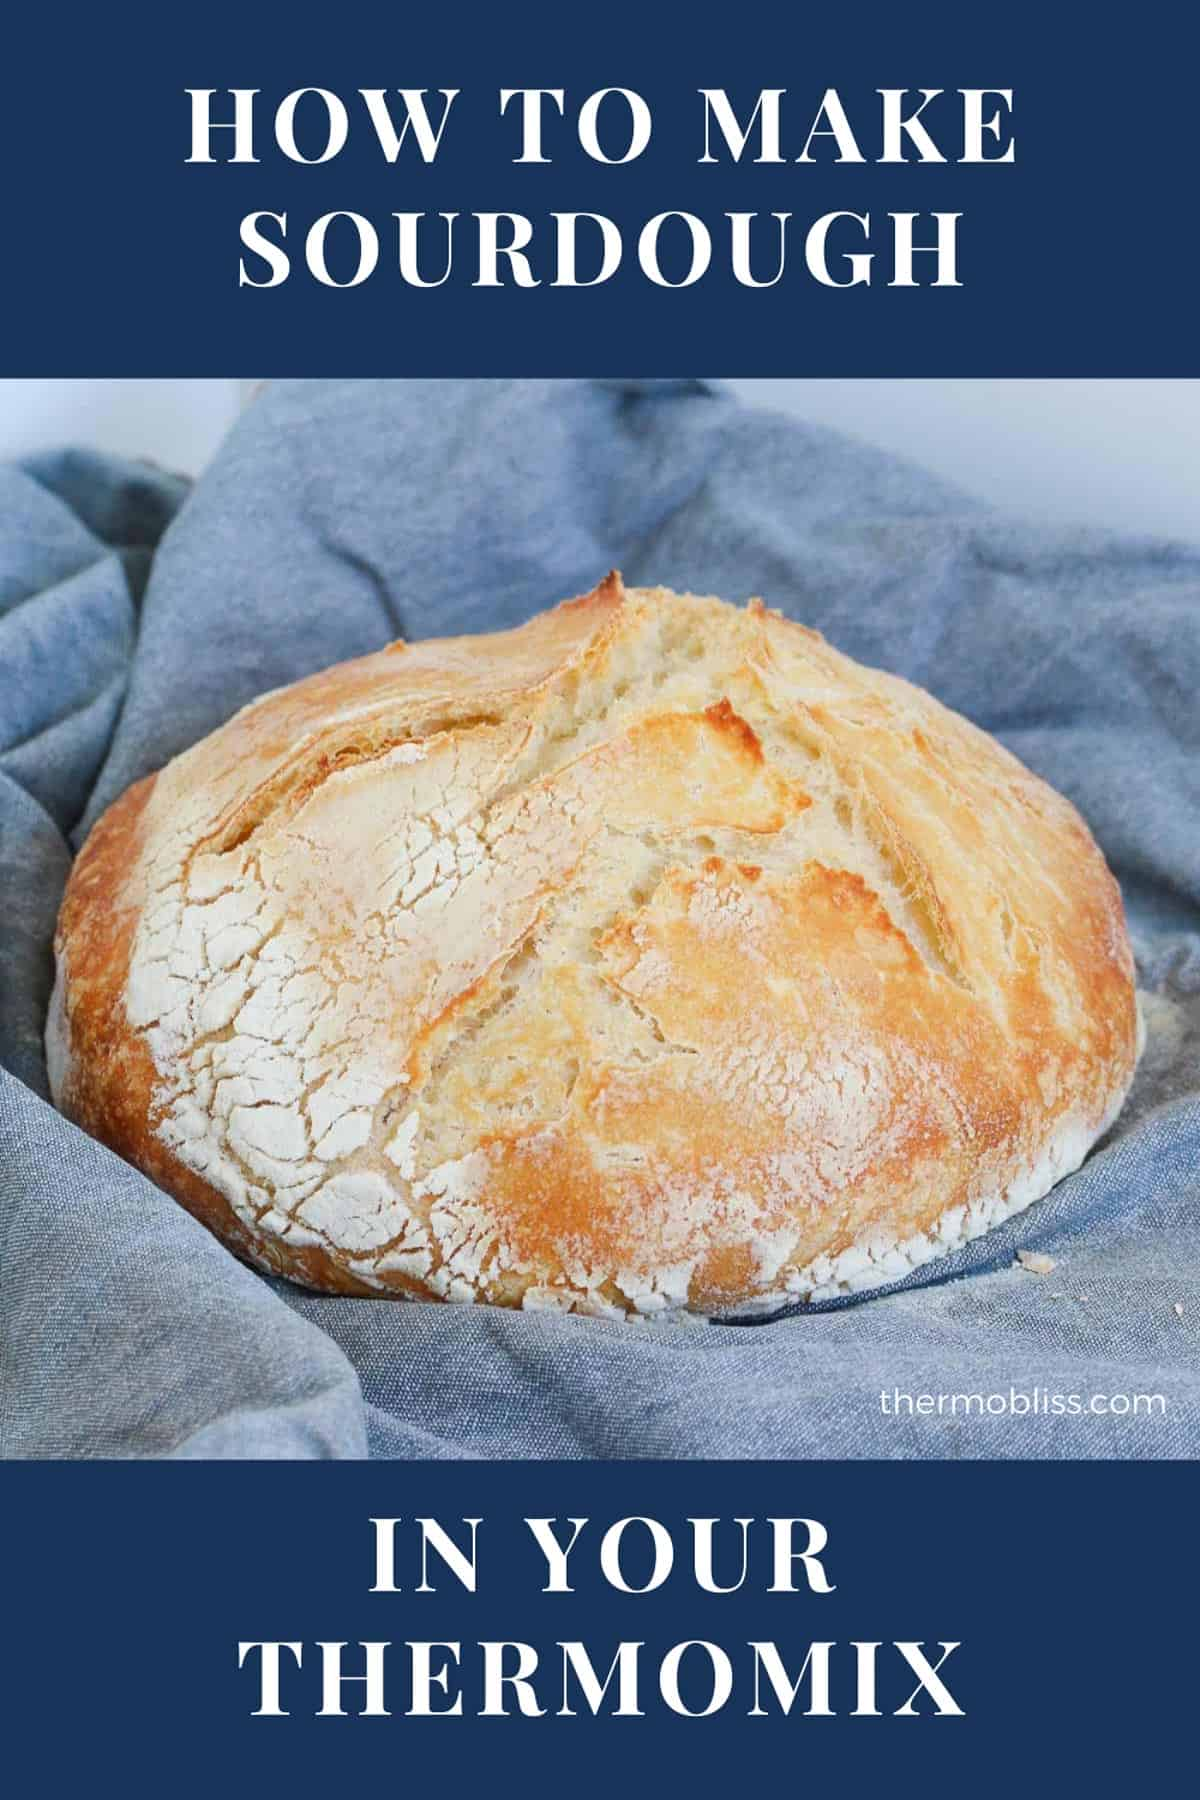 A loaf of homemade bread.